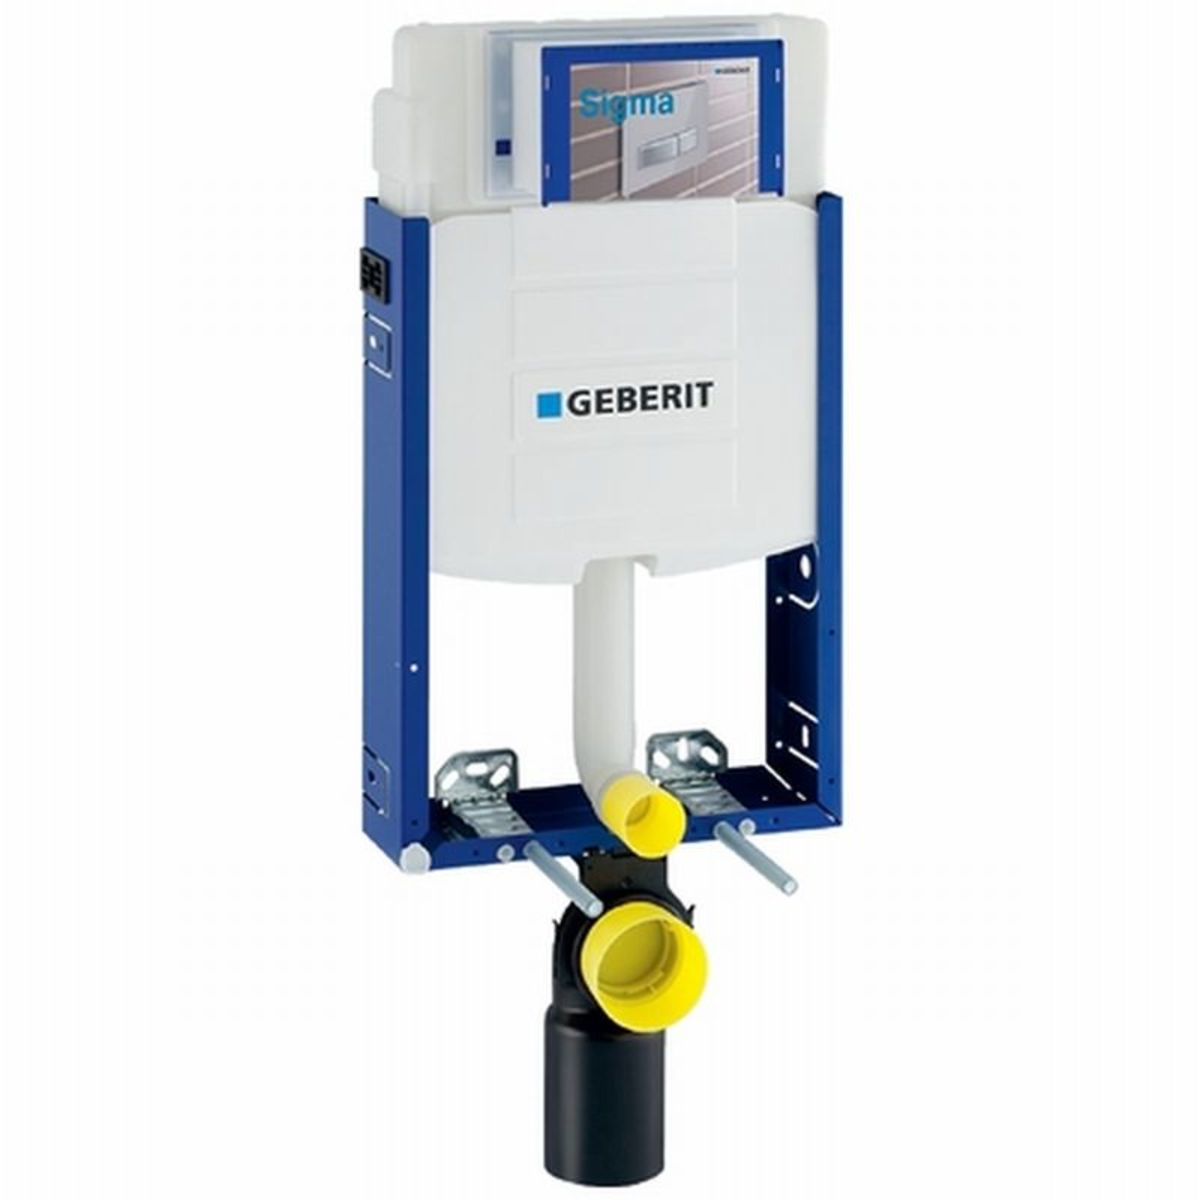 Geberit kombifix wc element h108 inclusief reservoir up320 for Geberit products